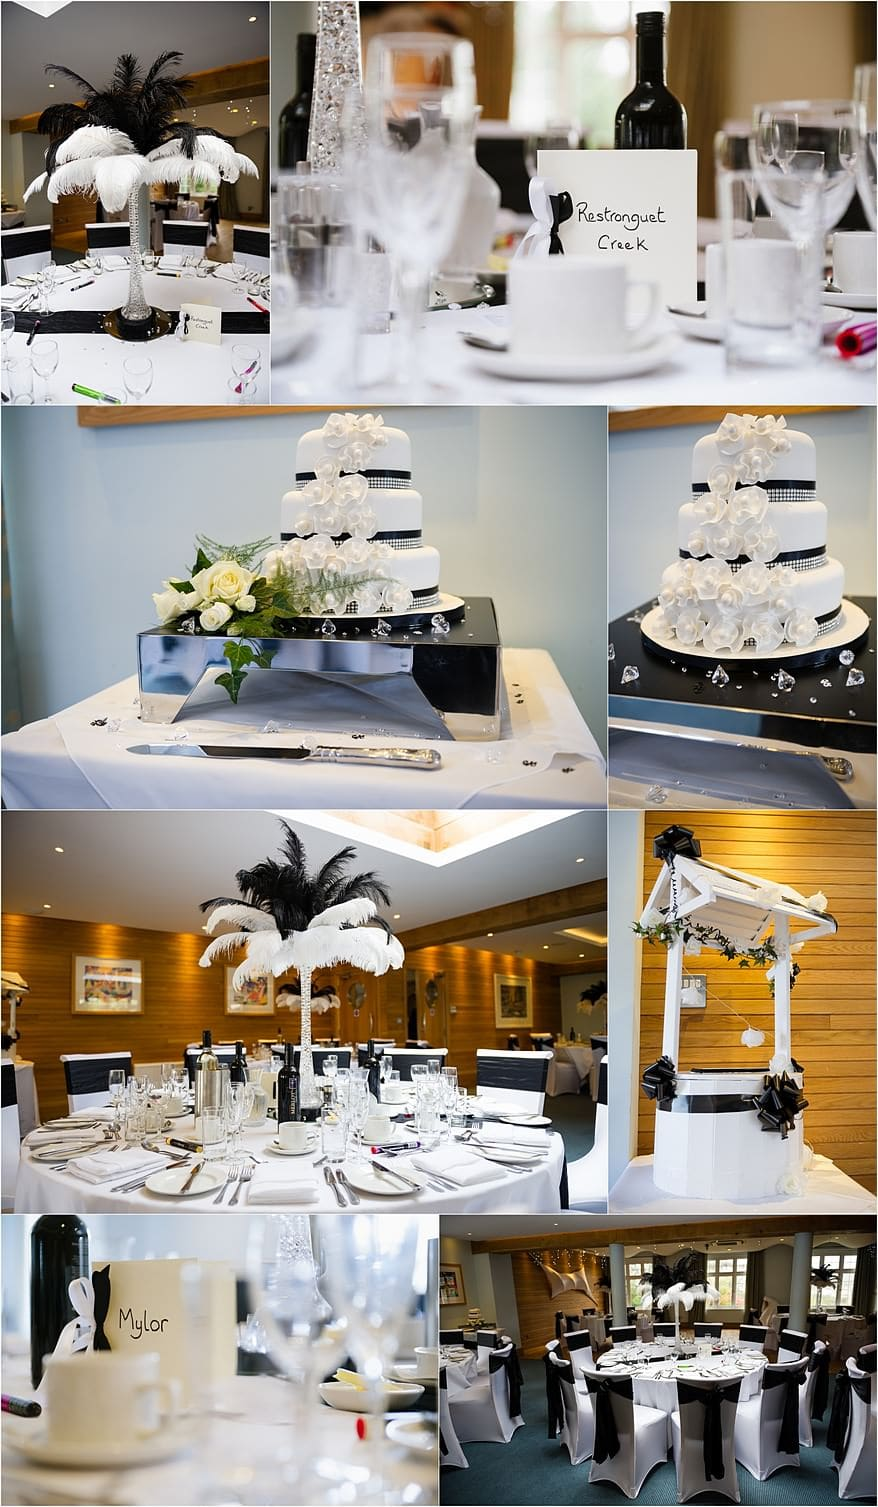 Vagas themed wedding details at St Michael's hotel wedding